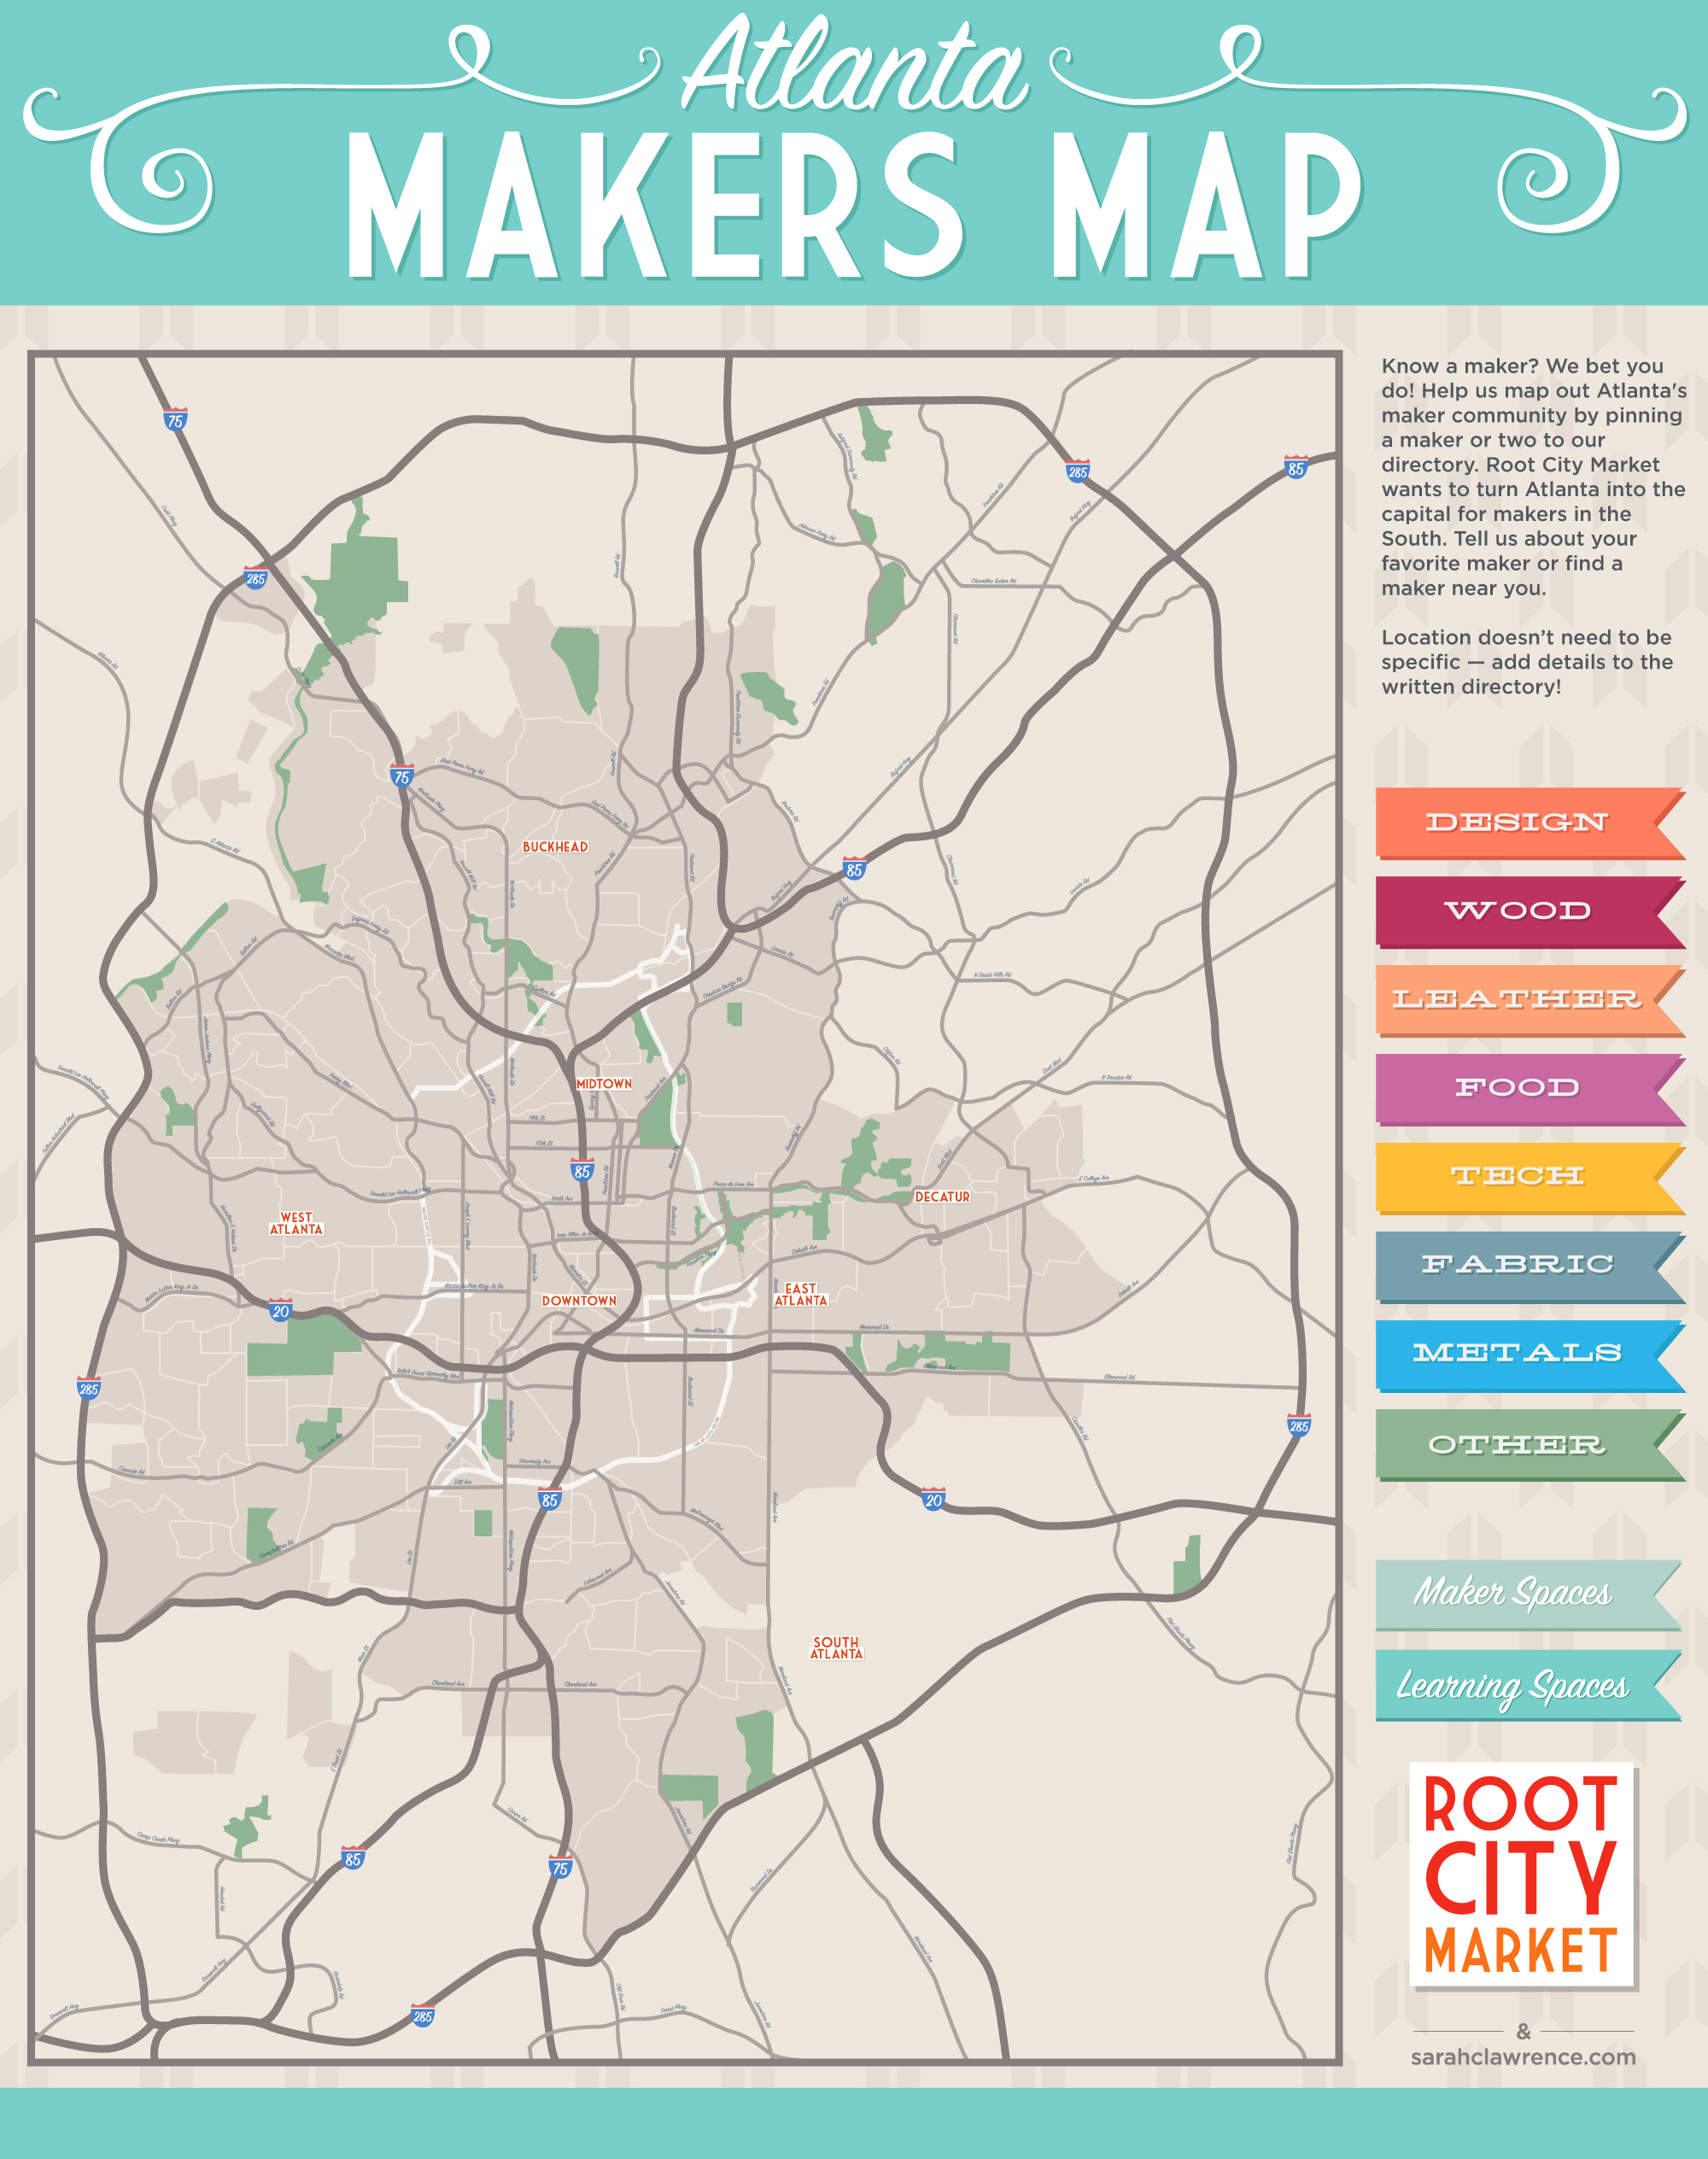 The Atlanta Makers Map Sarah Lawrence